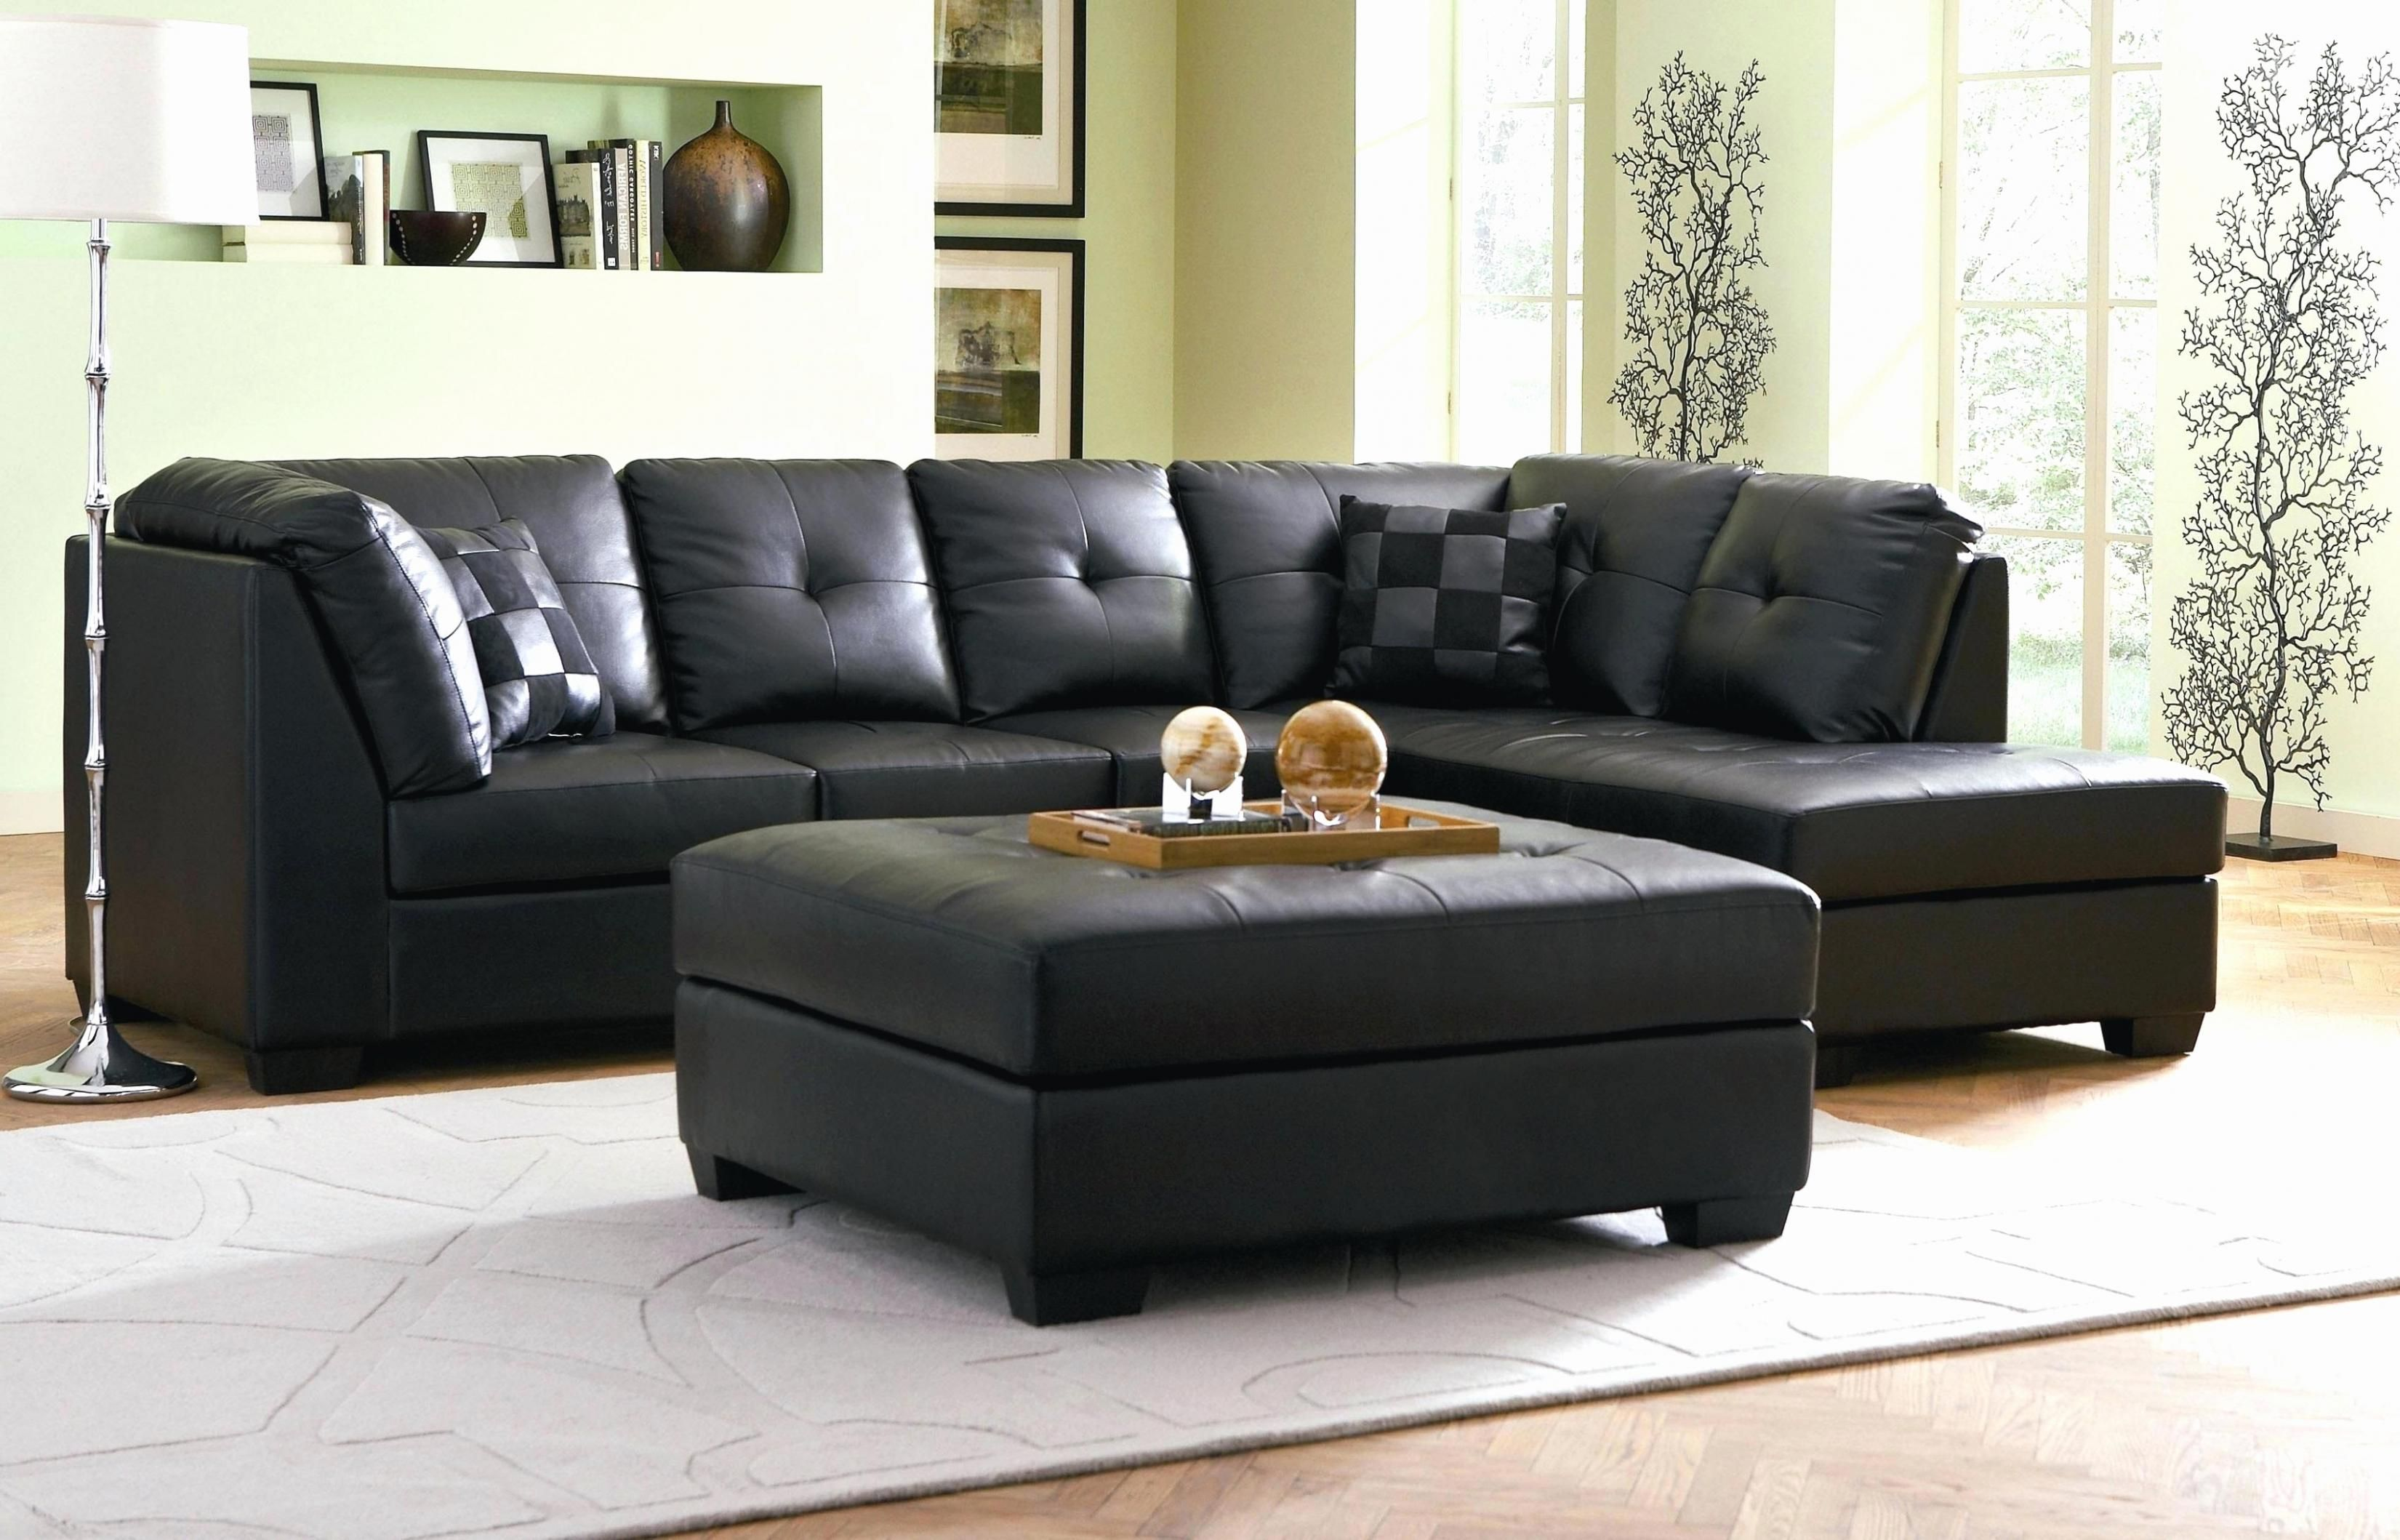 Pin By Sofacouchs On Apartment Sofa Black Leather Sofa Living